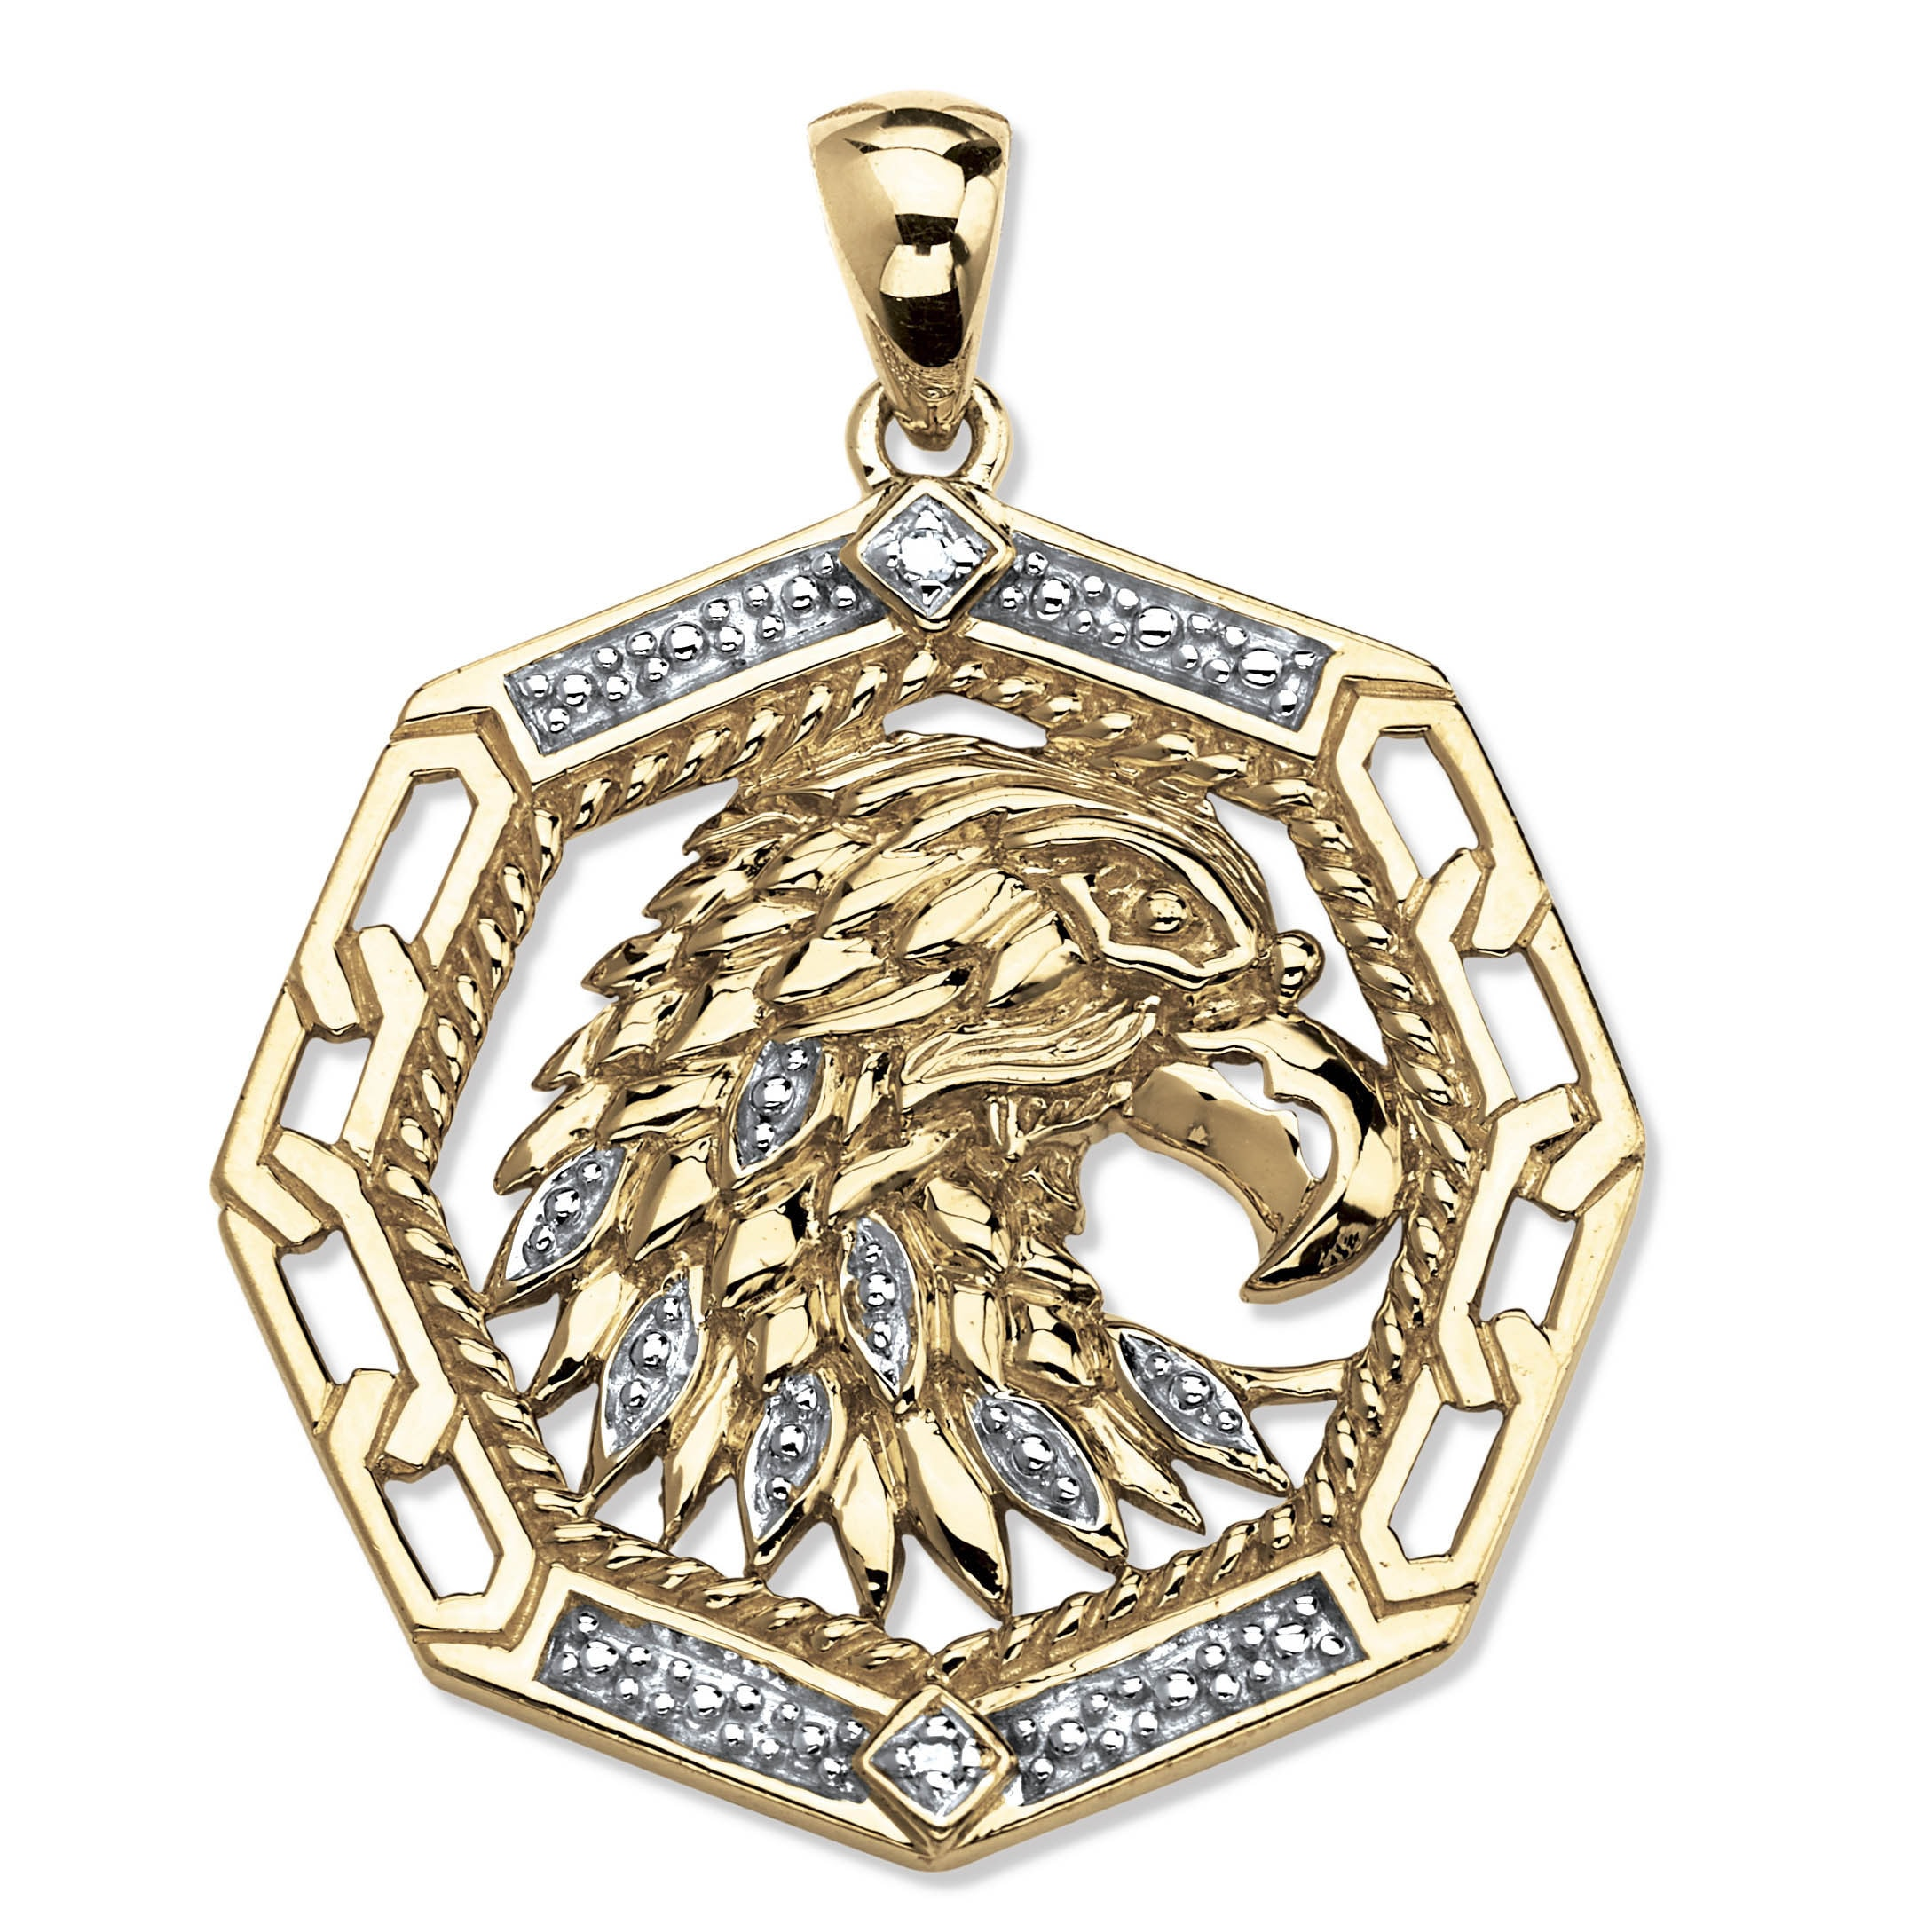 gold palmbeach s and cross yellow mens men cfm at crystal tone in pendant products jewelry wrapped detail chain